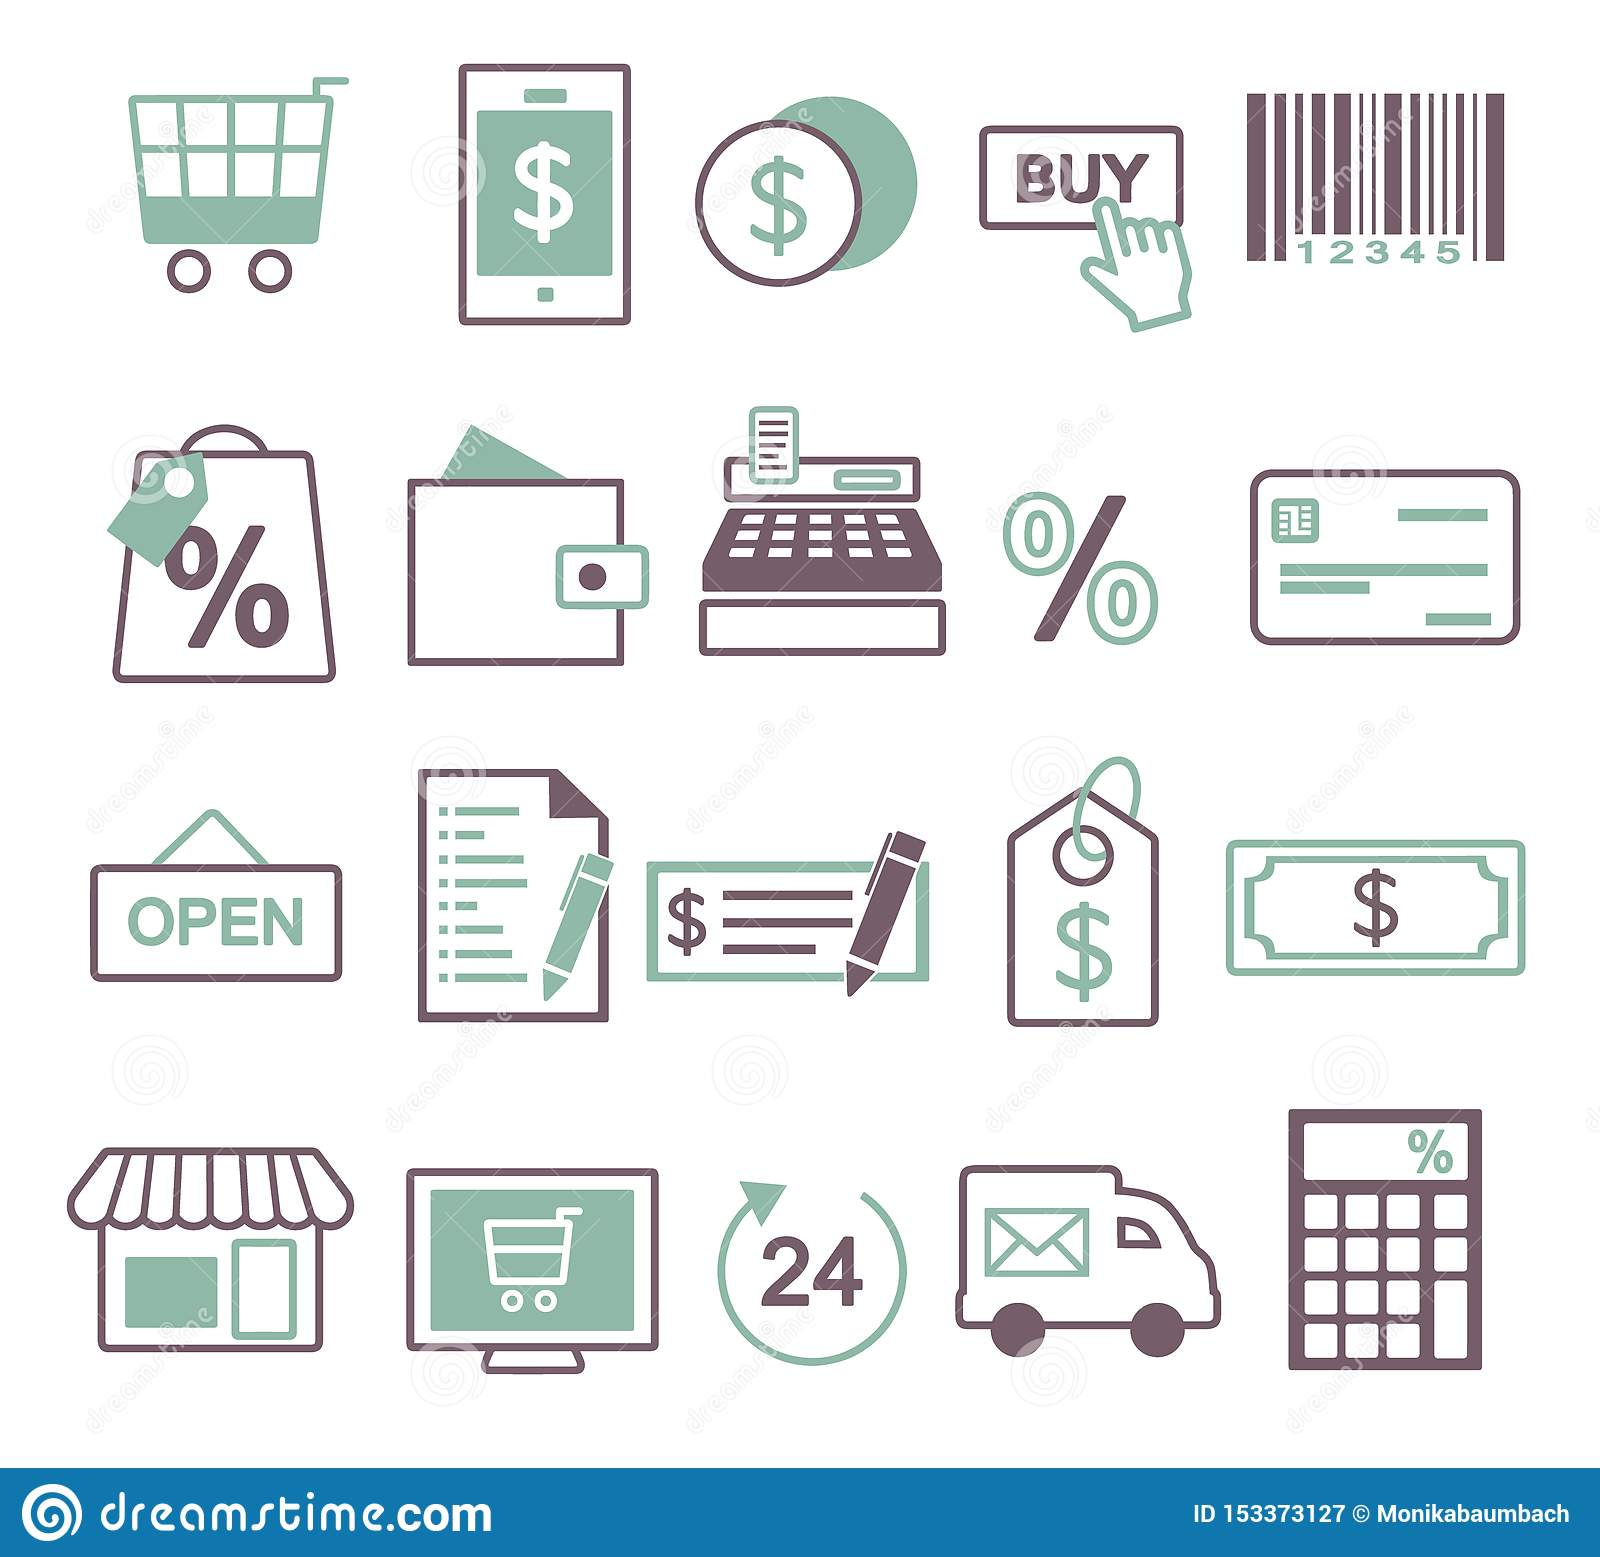 Vector icon set for creating inforaphics related to online shopping, sale and commerce, including shopping cart, mobile phone, buy